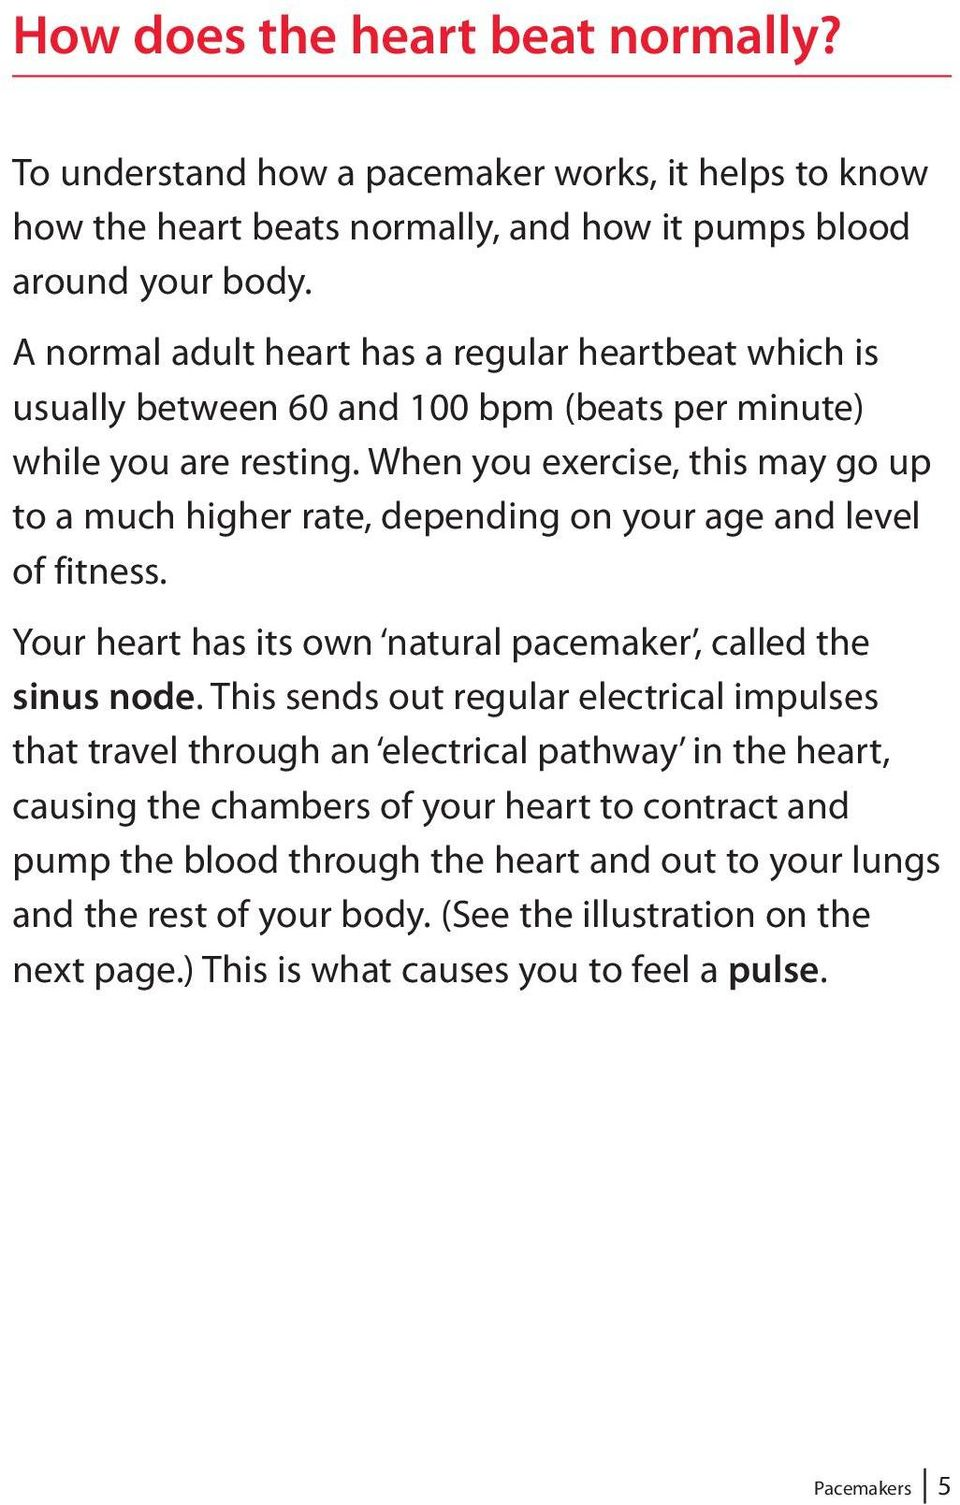 When you exercise, this may go up to a much higher rate, depending on your age and level of fitness. Your heart has its own natural pacemaker, called the sinus node.